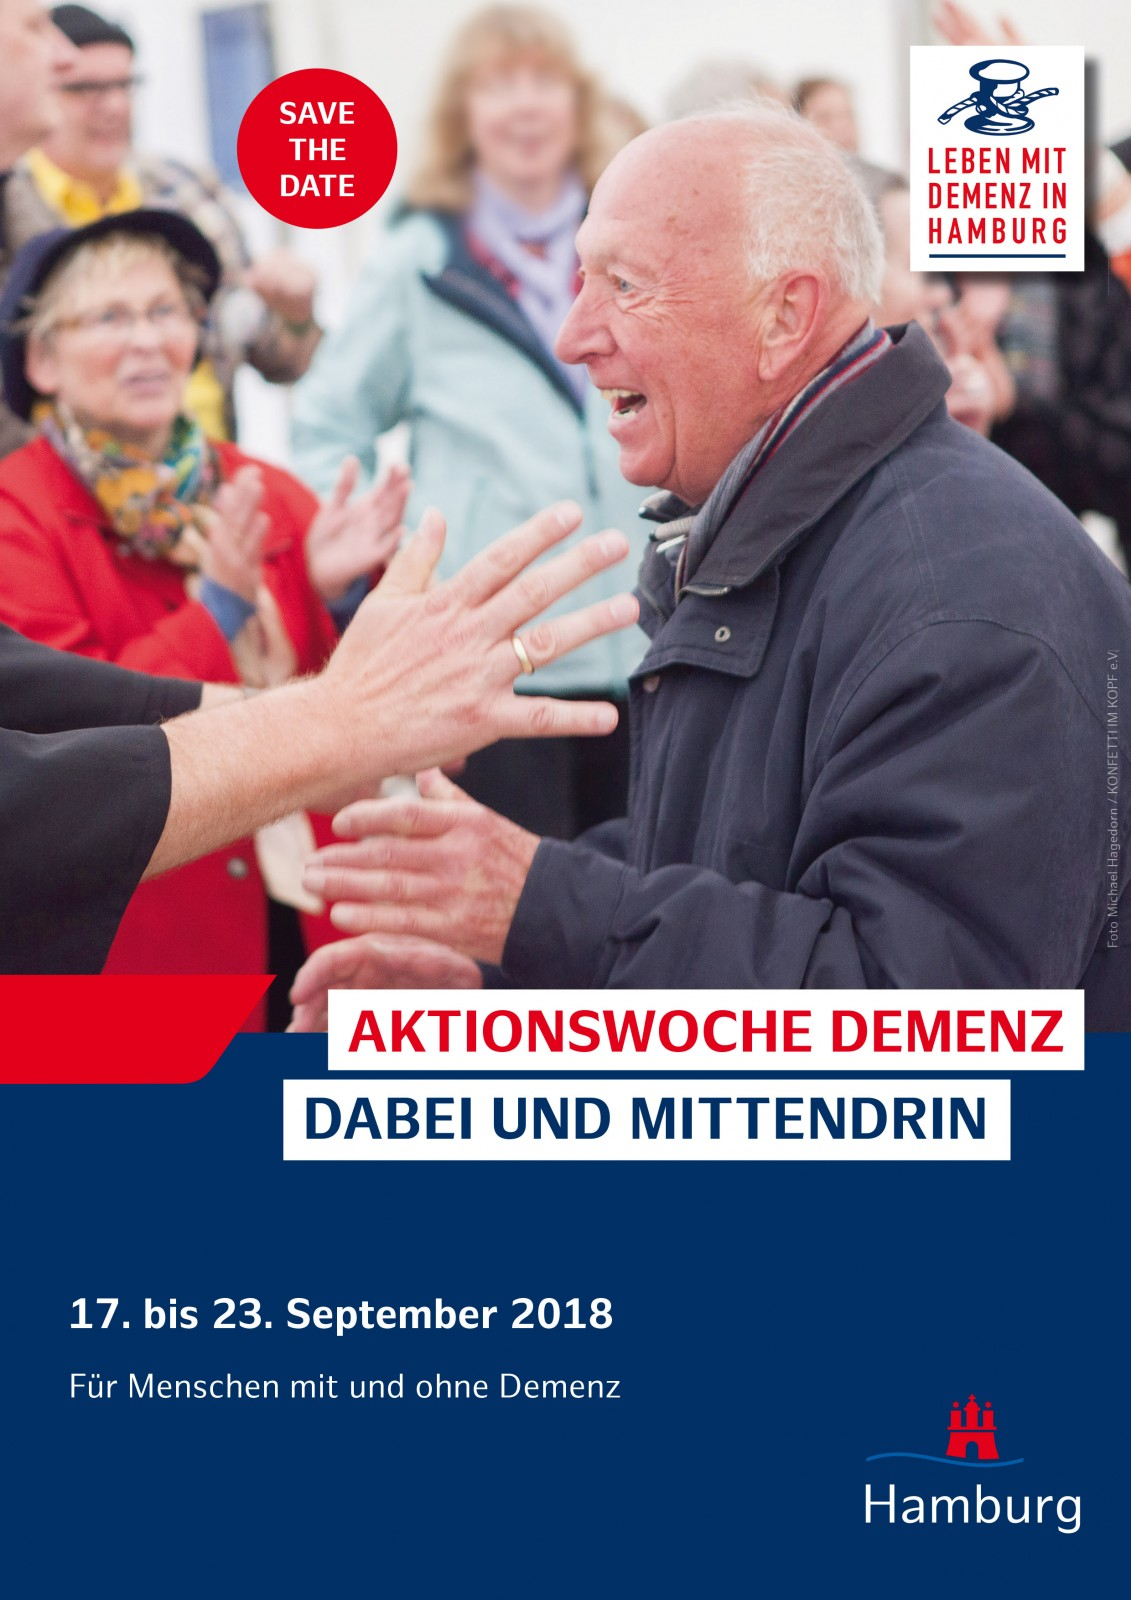 Save the date - Aktionswoche Demenz in Hamburg vom 17. bis  23.September